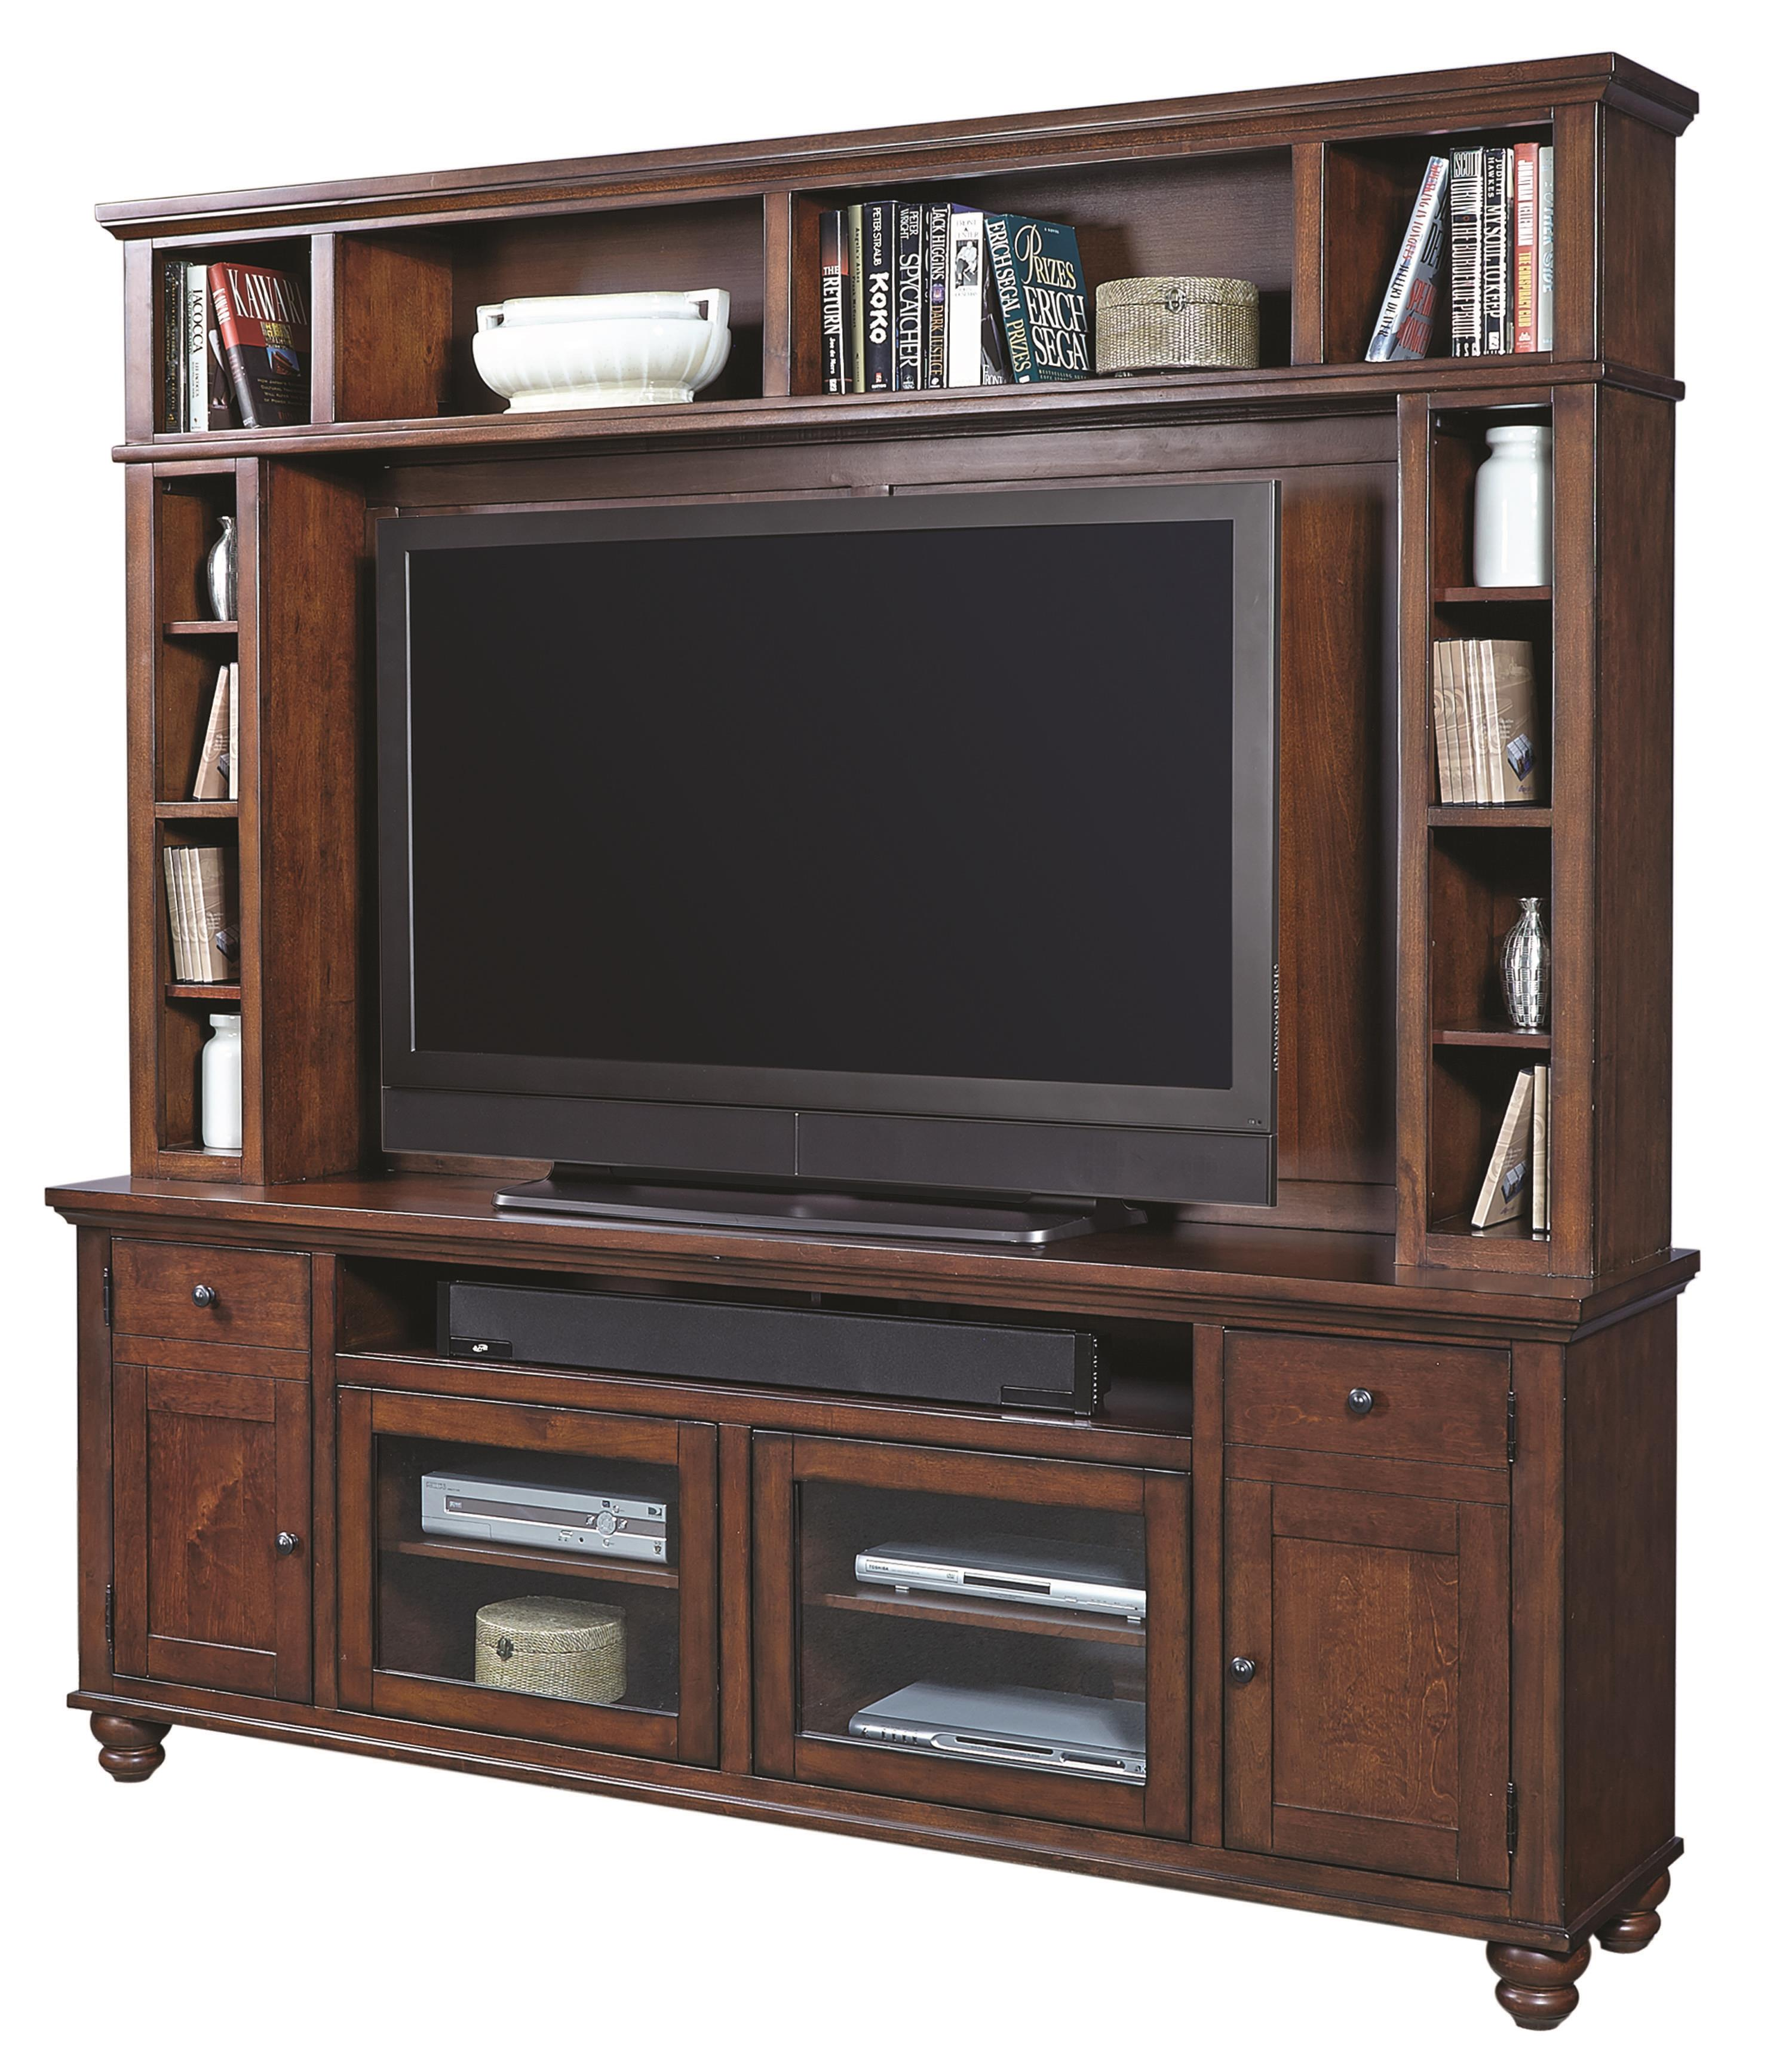 """Morris Home Furnishings Clinton Clinton 85"""" Console & Hutch - Item Number: 256247644"""